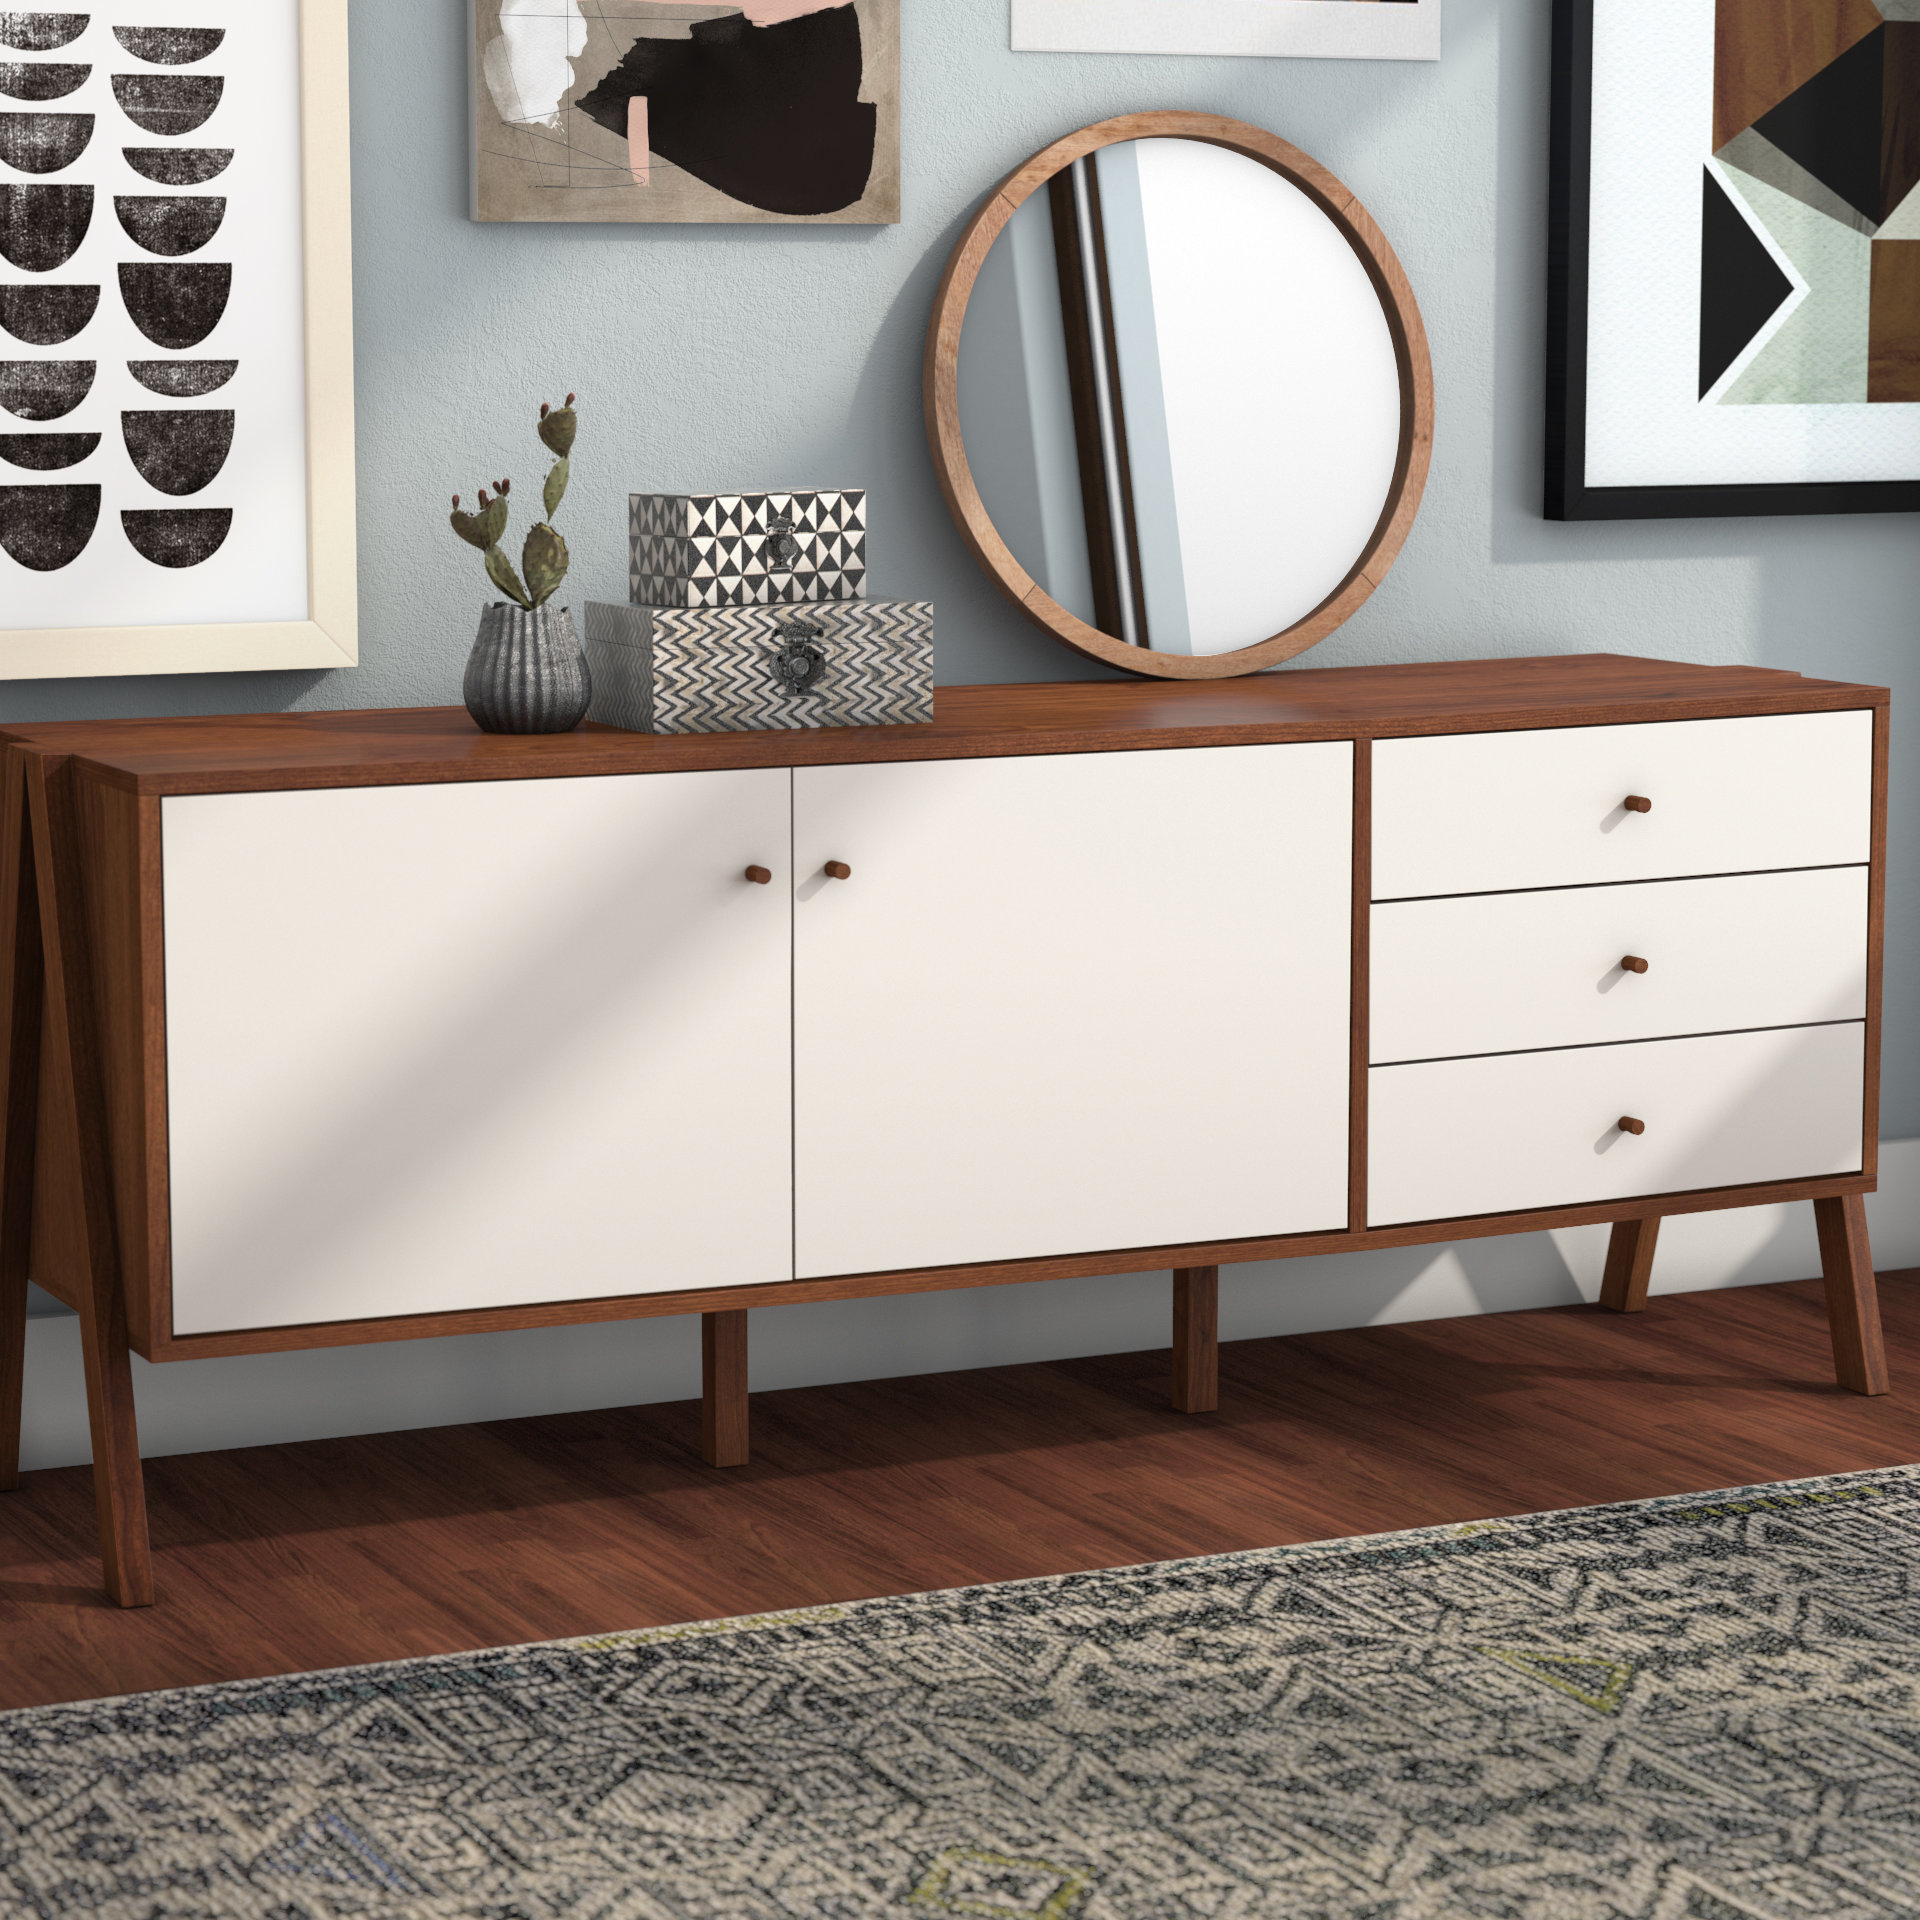 Extra Large Credenza | Wayfair With Barr Credenzas (View 17 of 20)